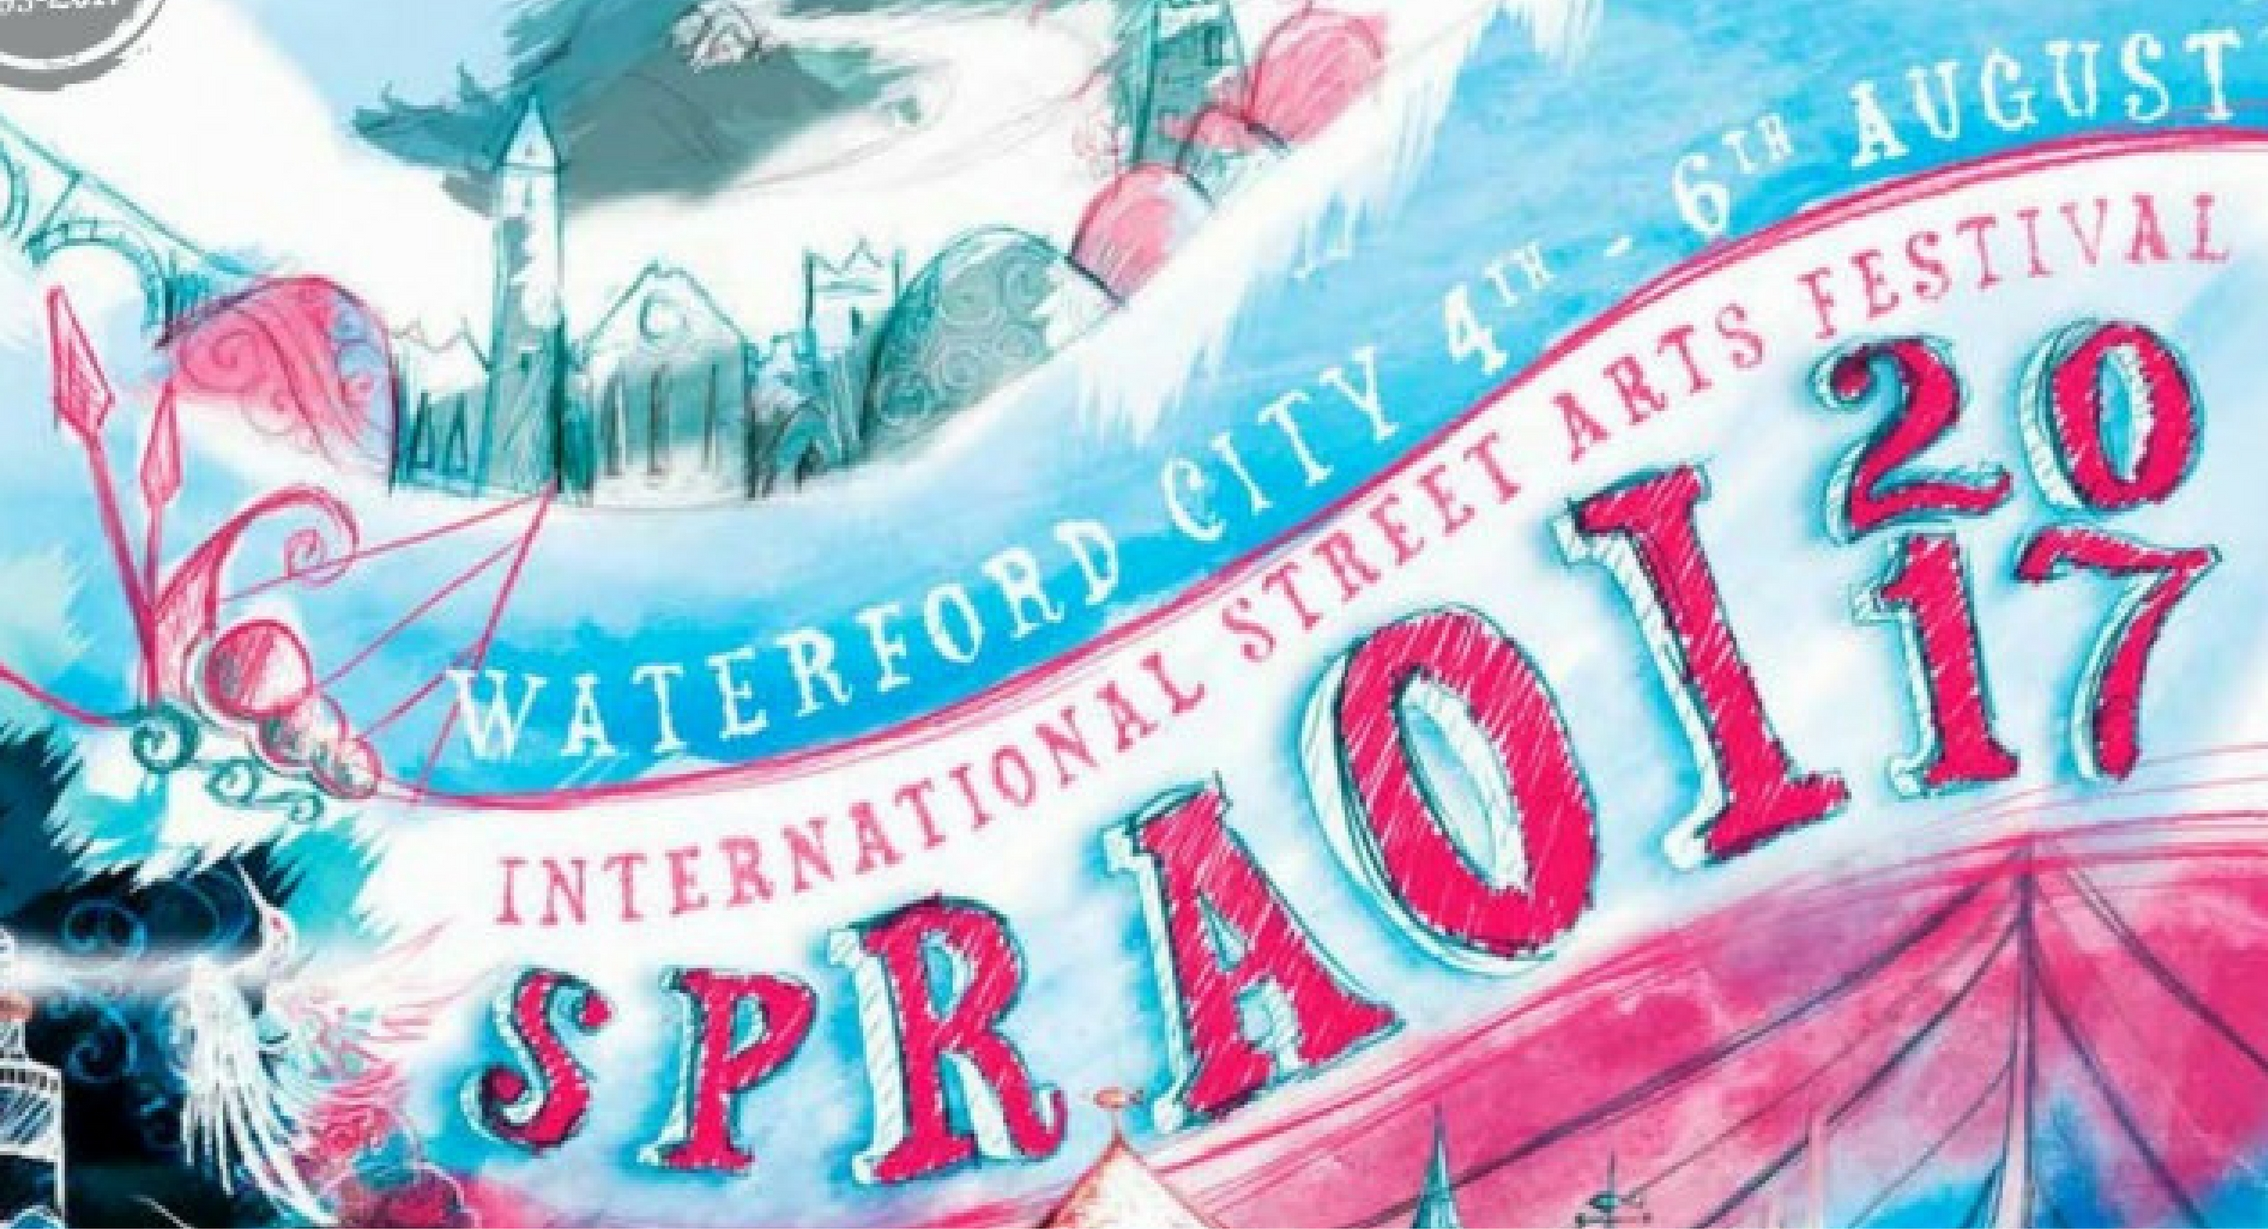 Spraoi is celebrating 25 years